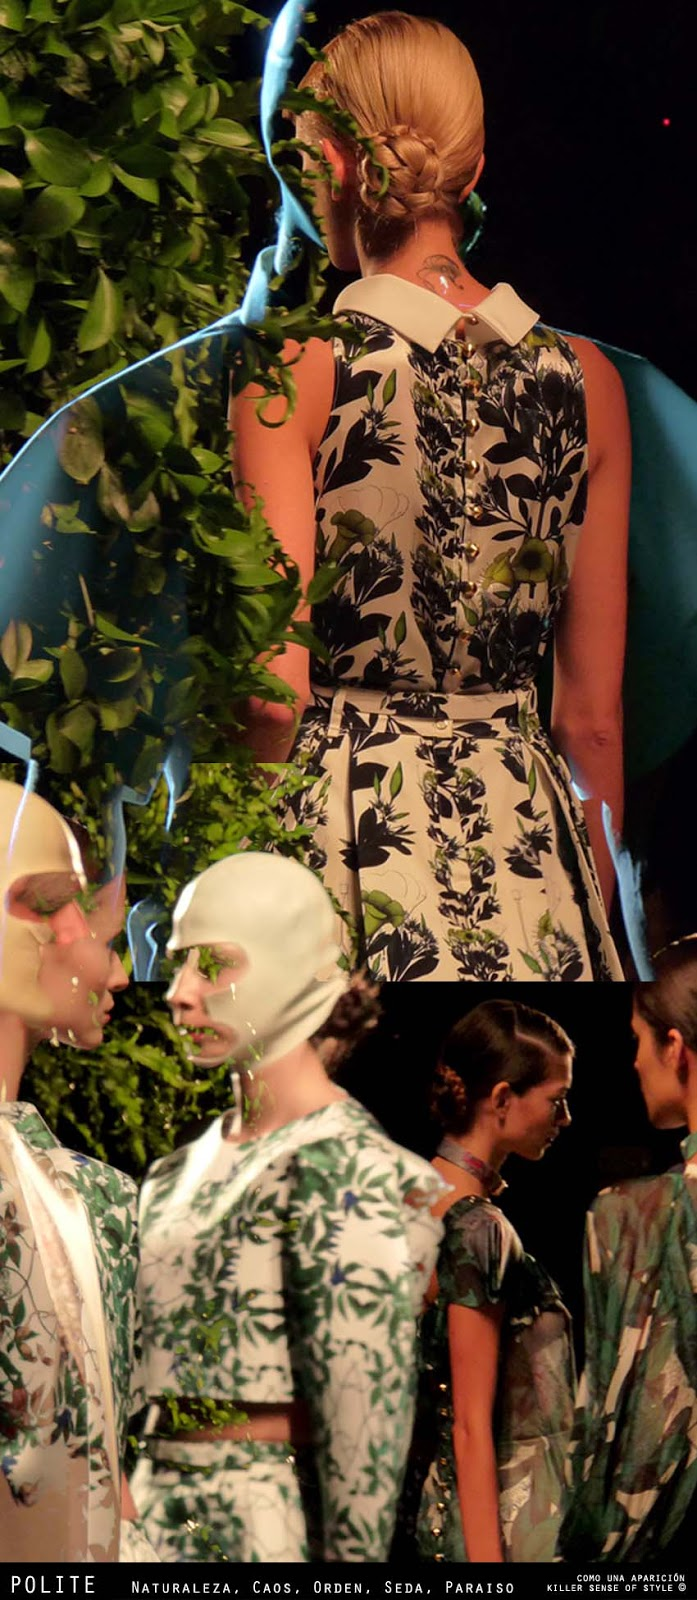 polite-colombiamoda-desfile-fashion-shows-spring-summer-primavera-verano-como-una-aparicion-killer-sense-of-style